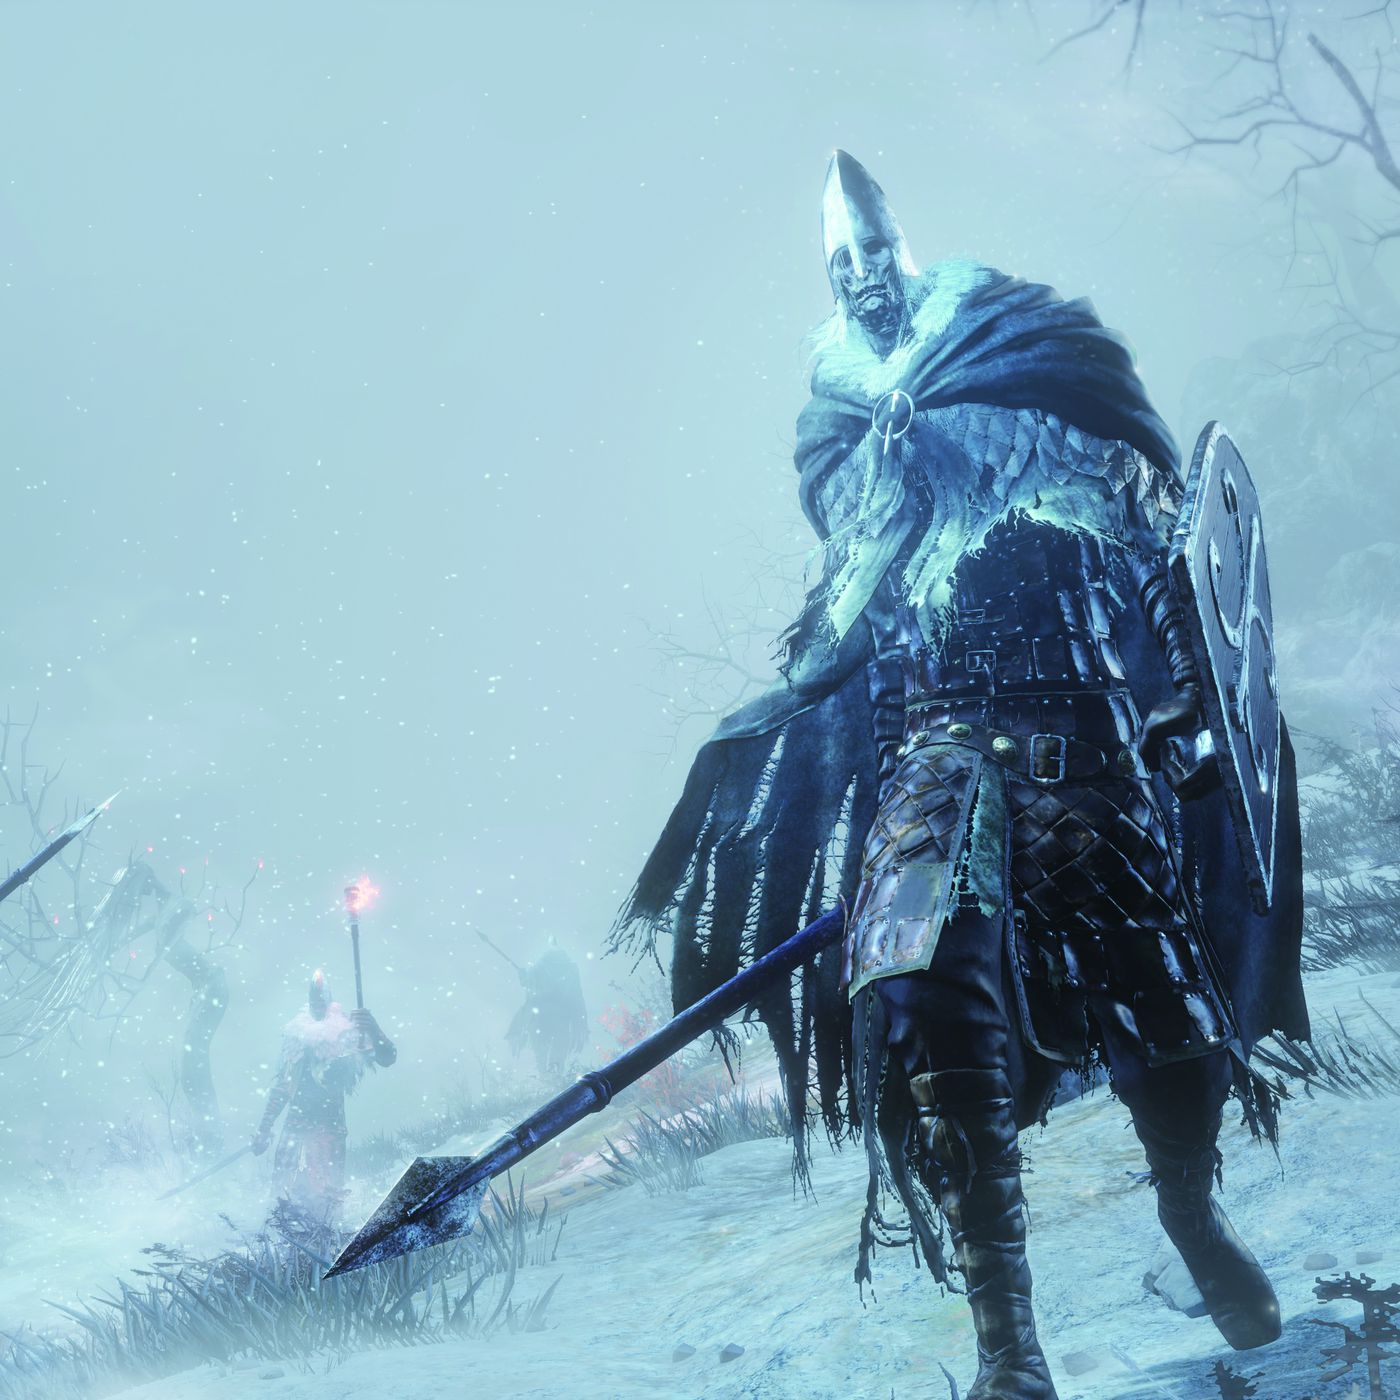 Dark Souls 3: Ashes of Ariandel review | Polygon